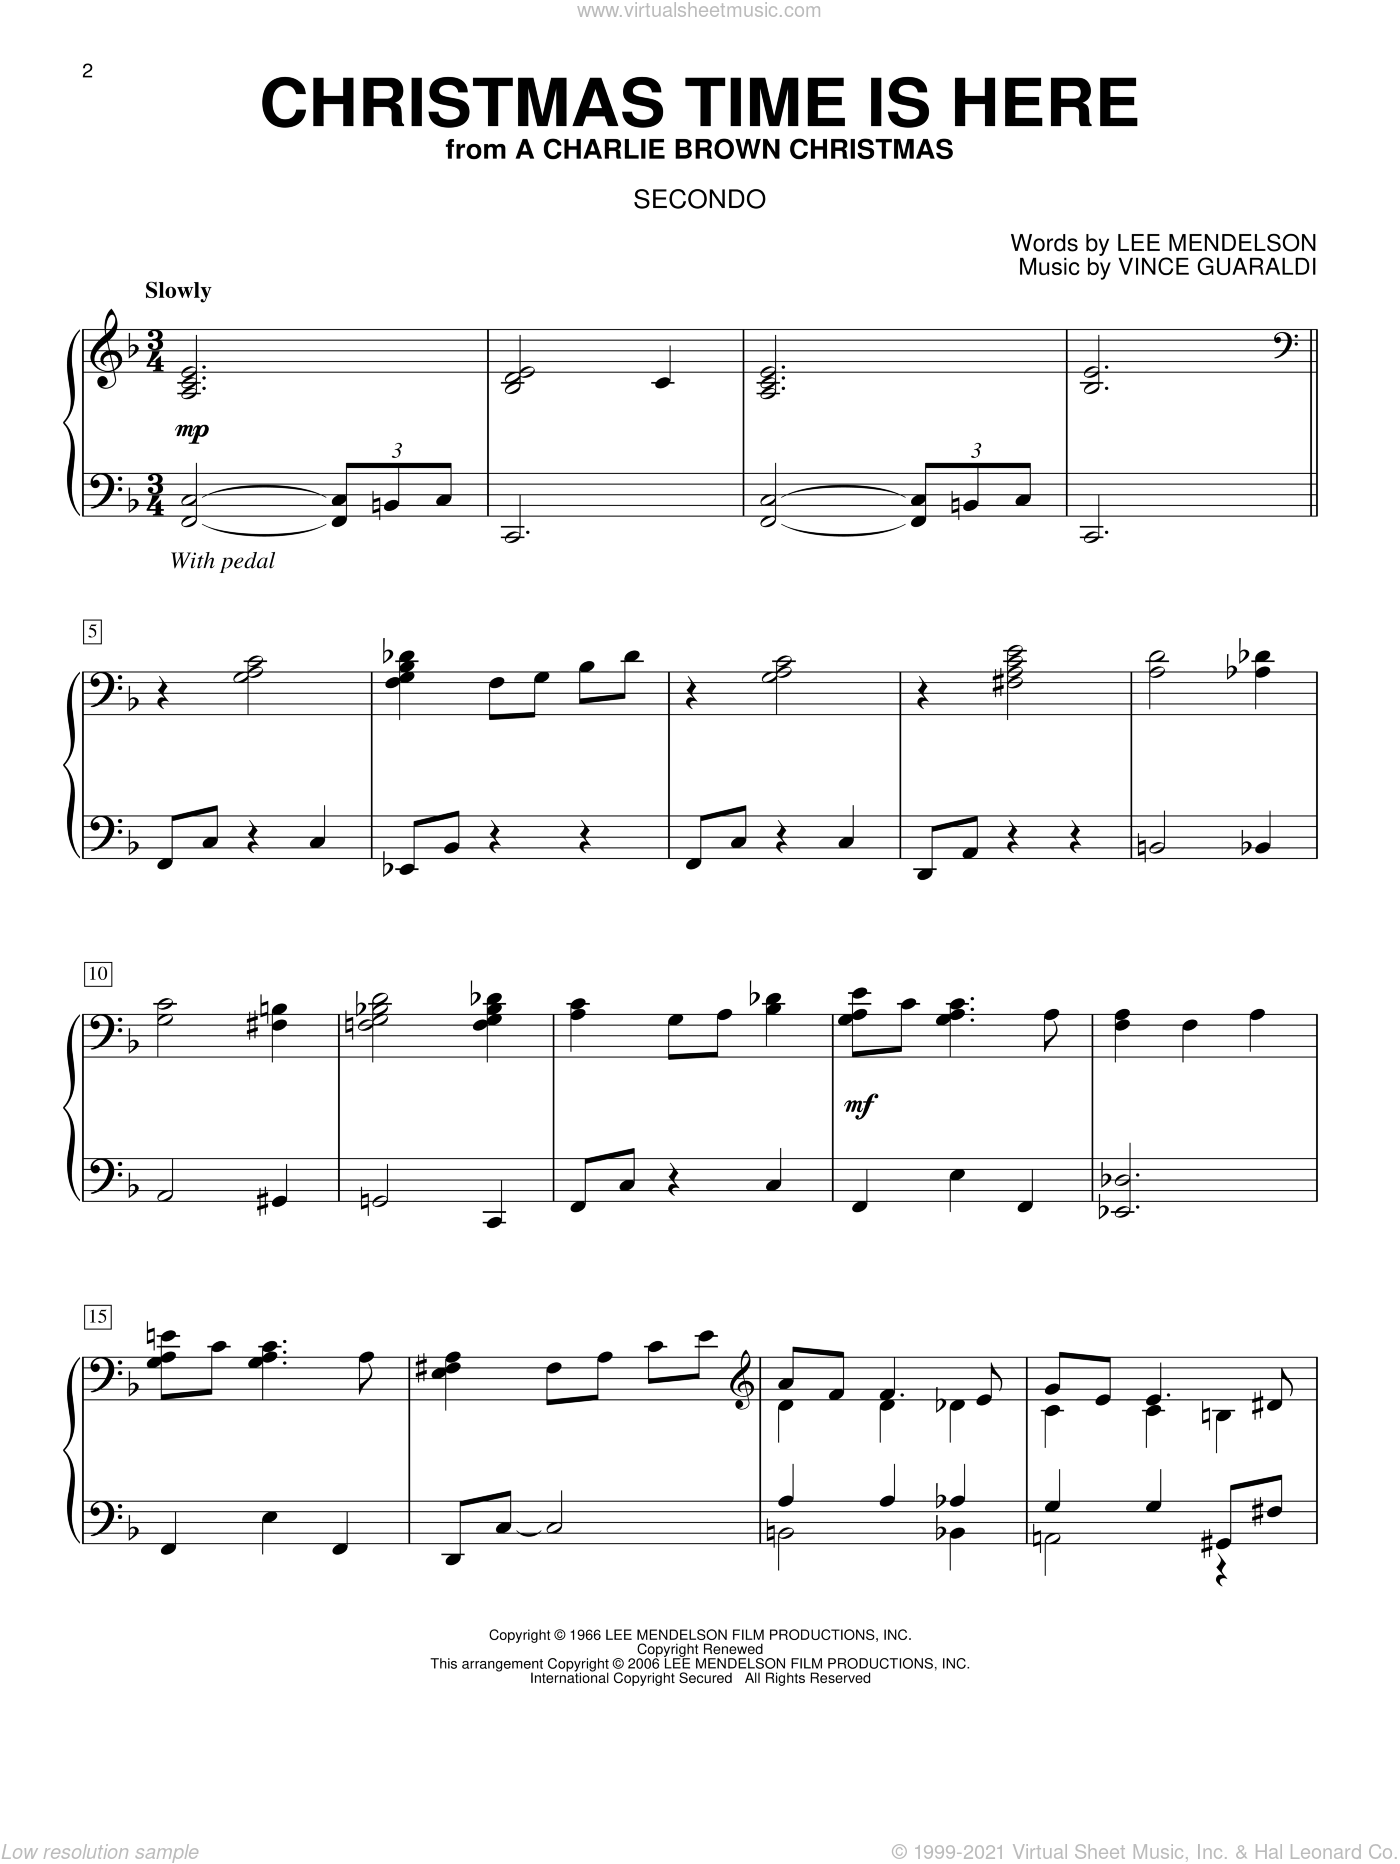 Christmas Time Is Here sheet music for piano four hands (duets) by Lee Mendelson and Vince Guaraldi. Score Image Preview.